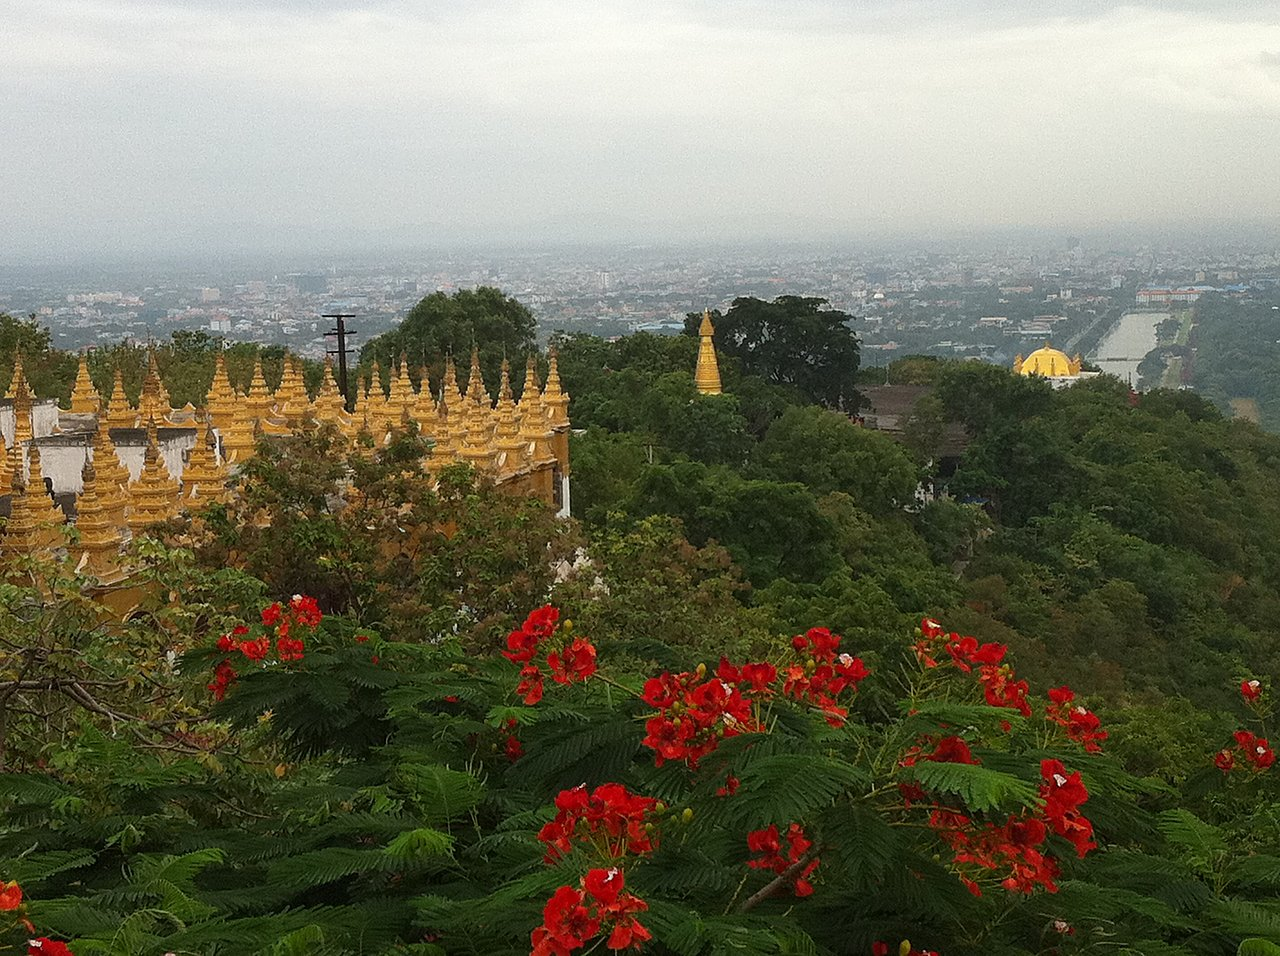 View from Mandalay Hill. | Photo taken by Rodney S